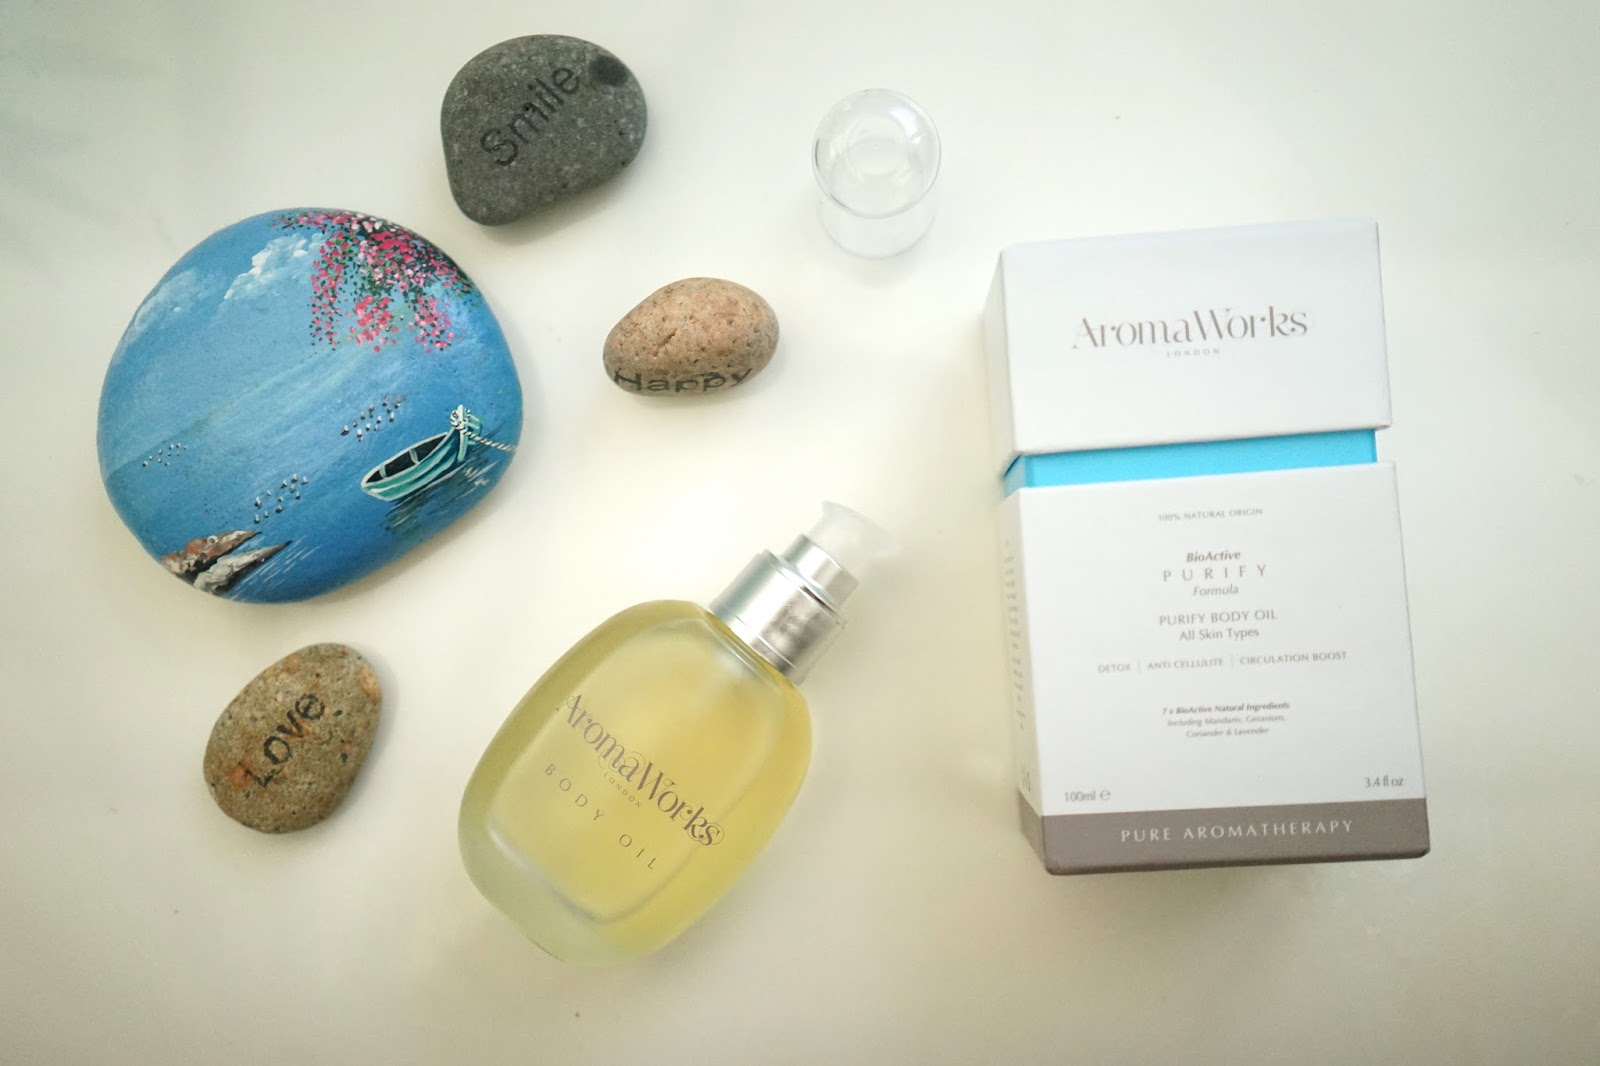 aromaworks purify body oil review